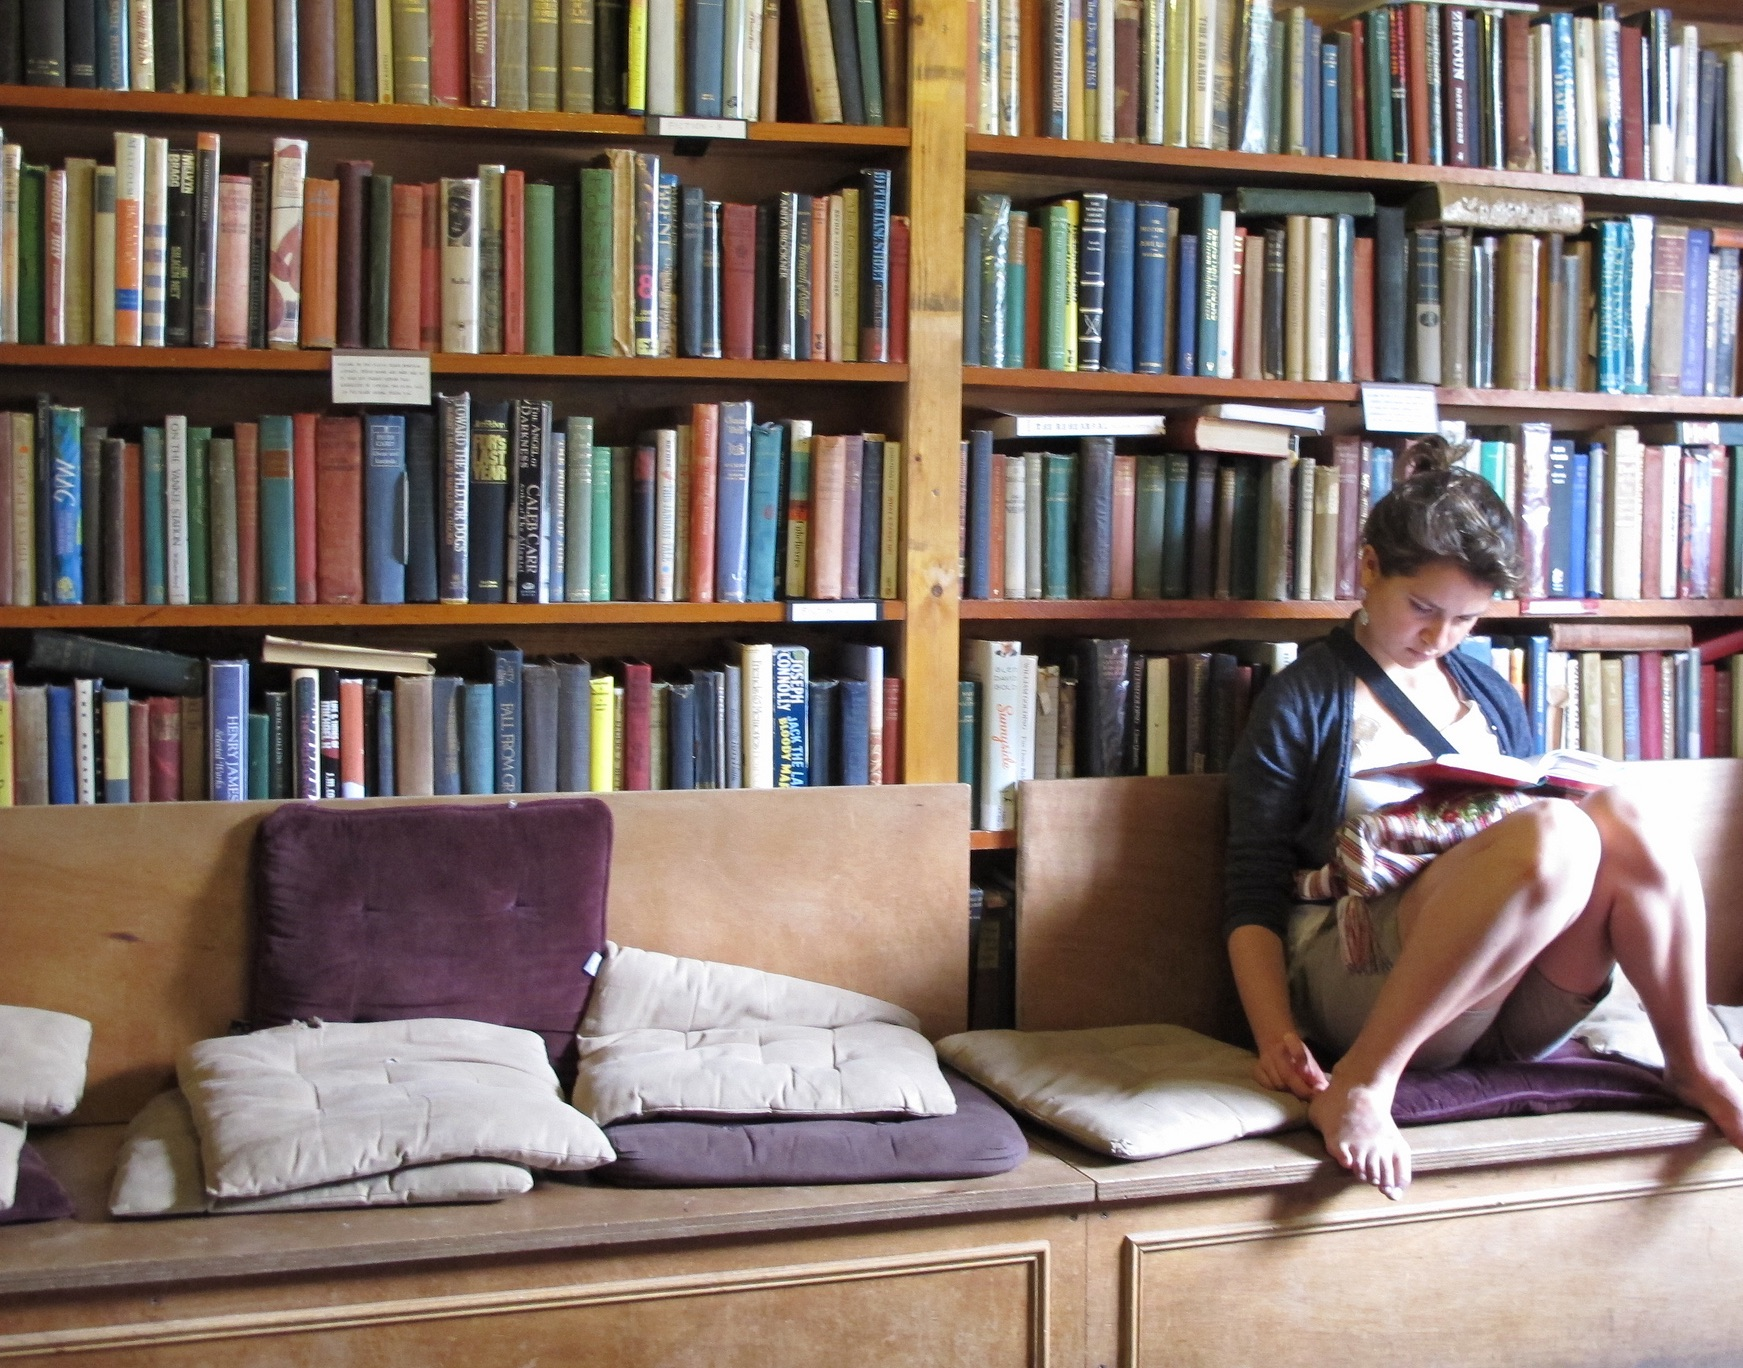 Reading Literature (cropped)